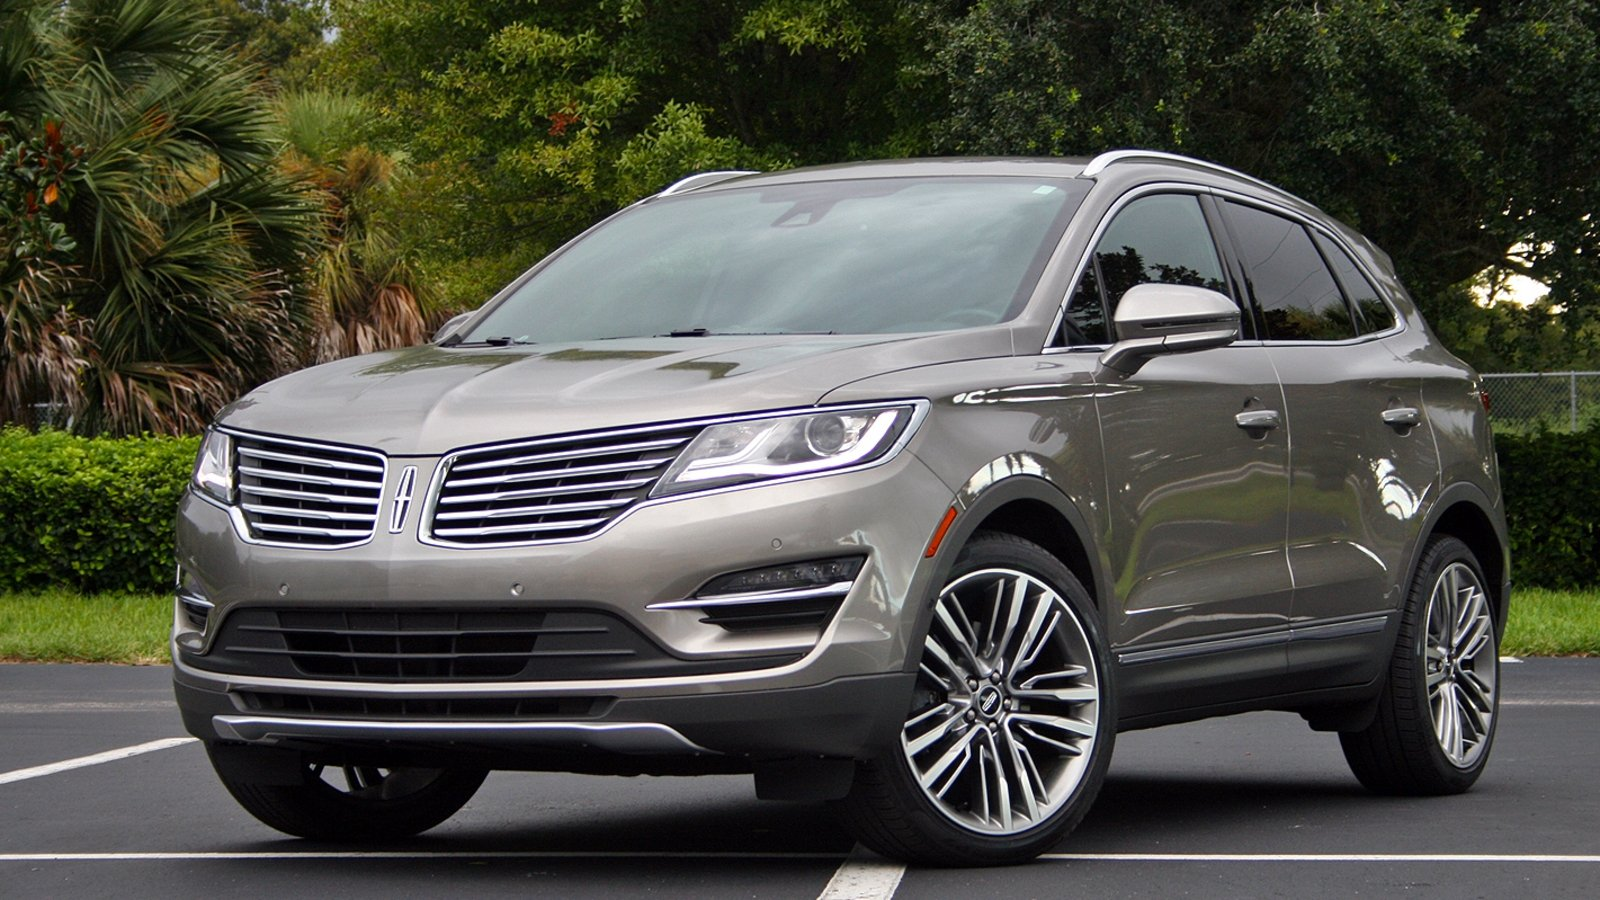 Top 10 Most Expensive Cars >> 2016 Lincoln MKC – Driven Review - Top Speed